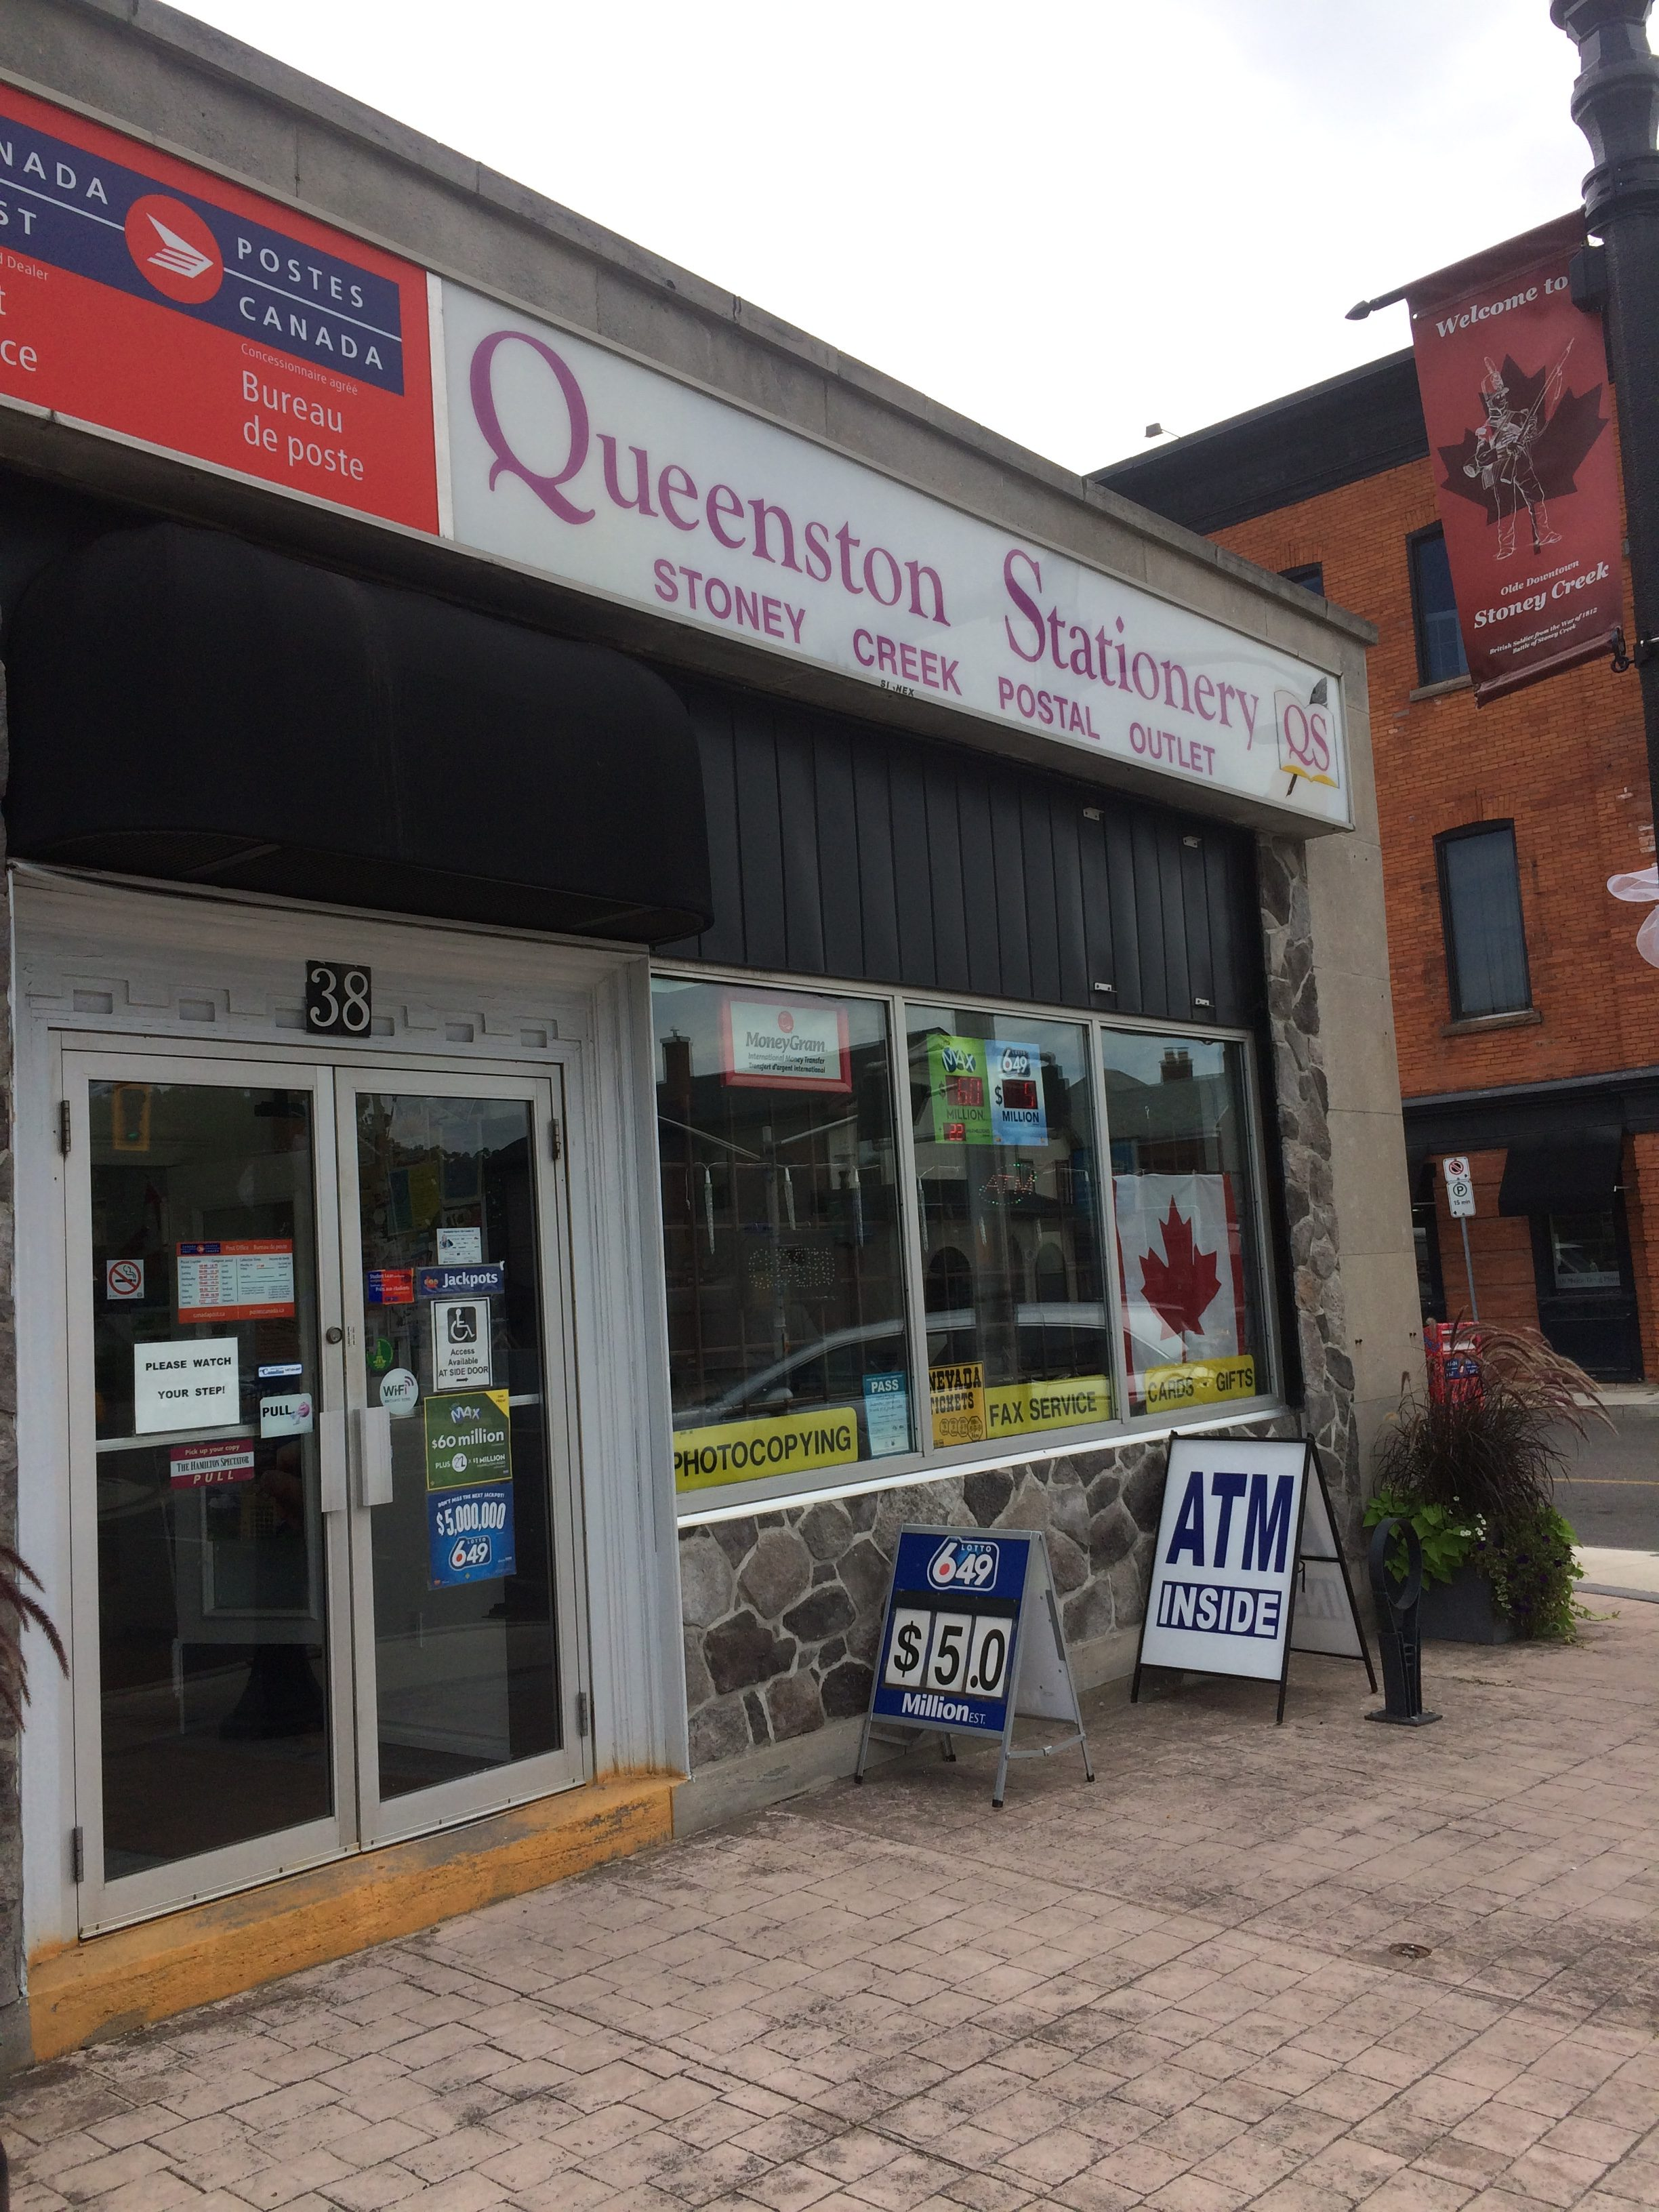 Queenston Stationary Postal Outlet